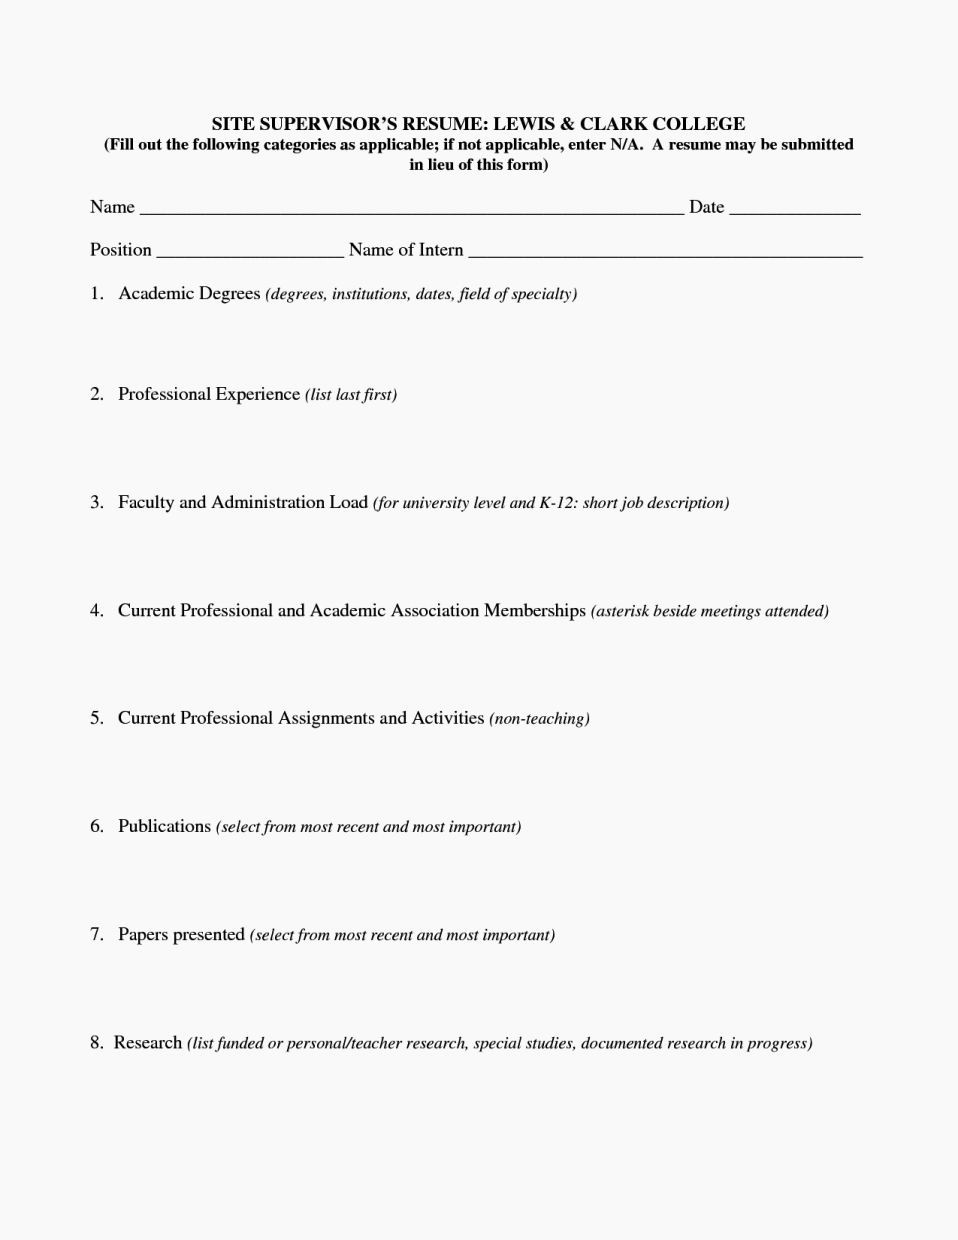 Resumes Fill In the Blanks Beautiful Fill In Resume Templates Resume Template